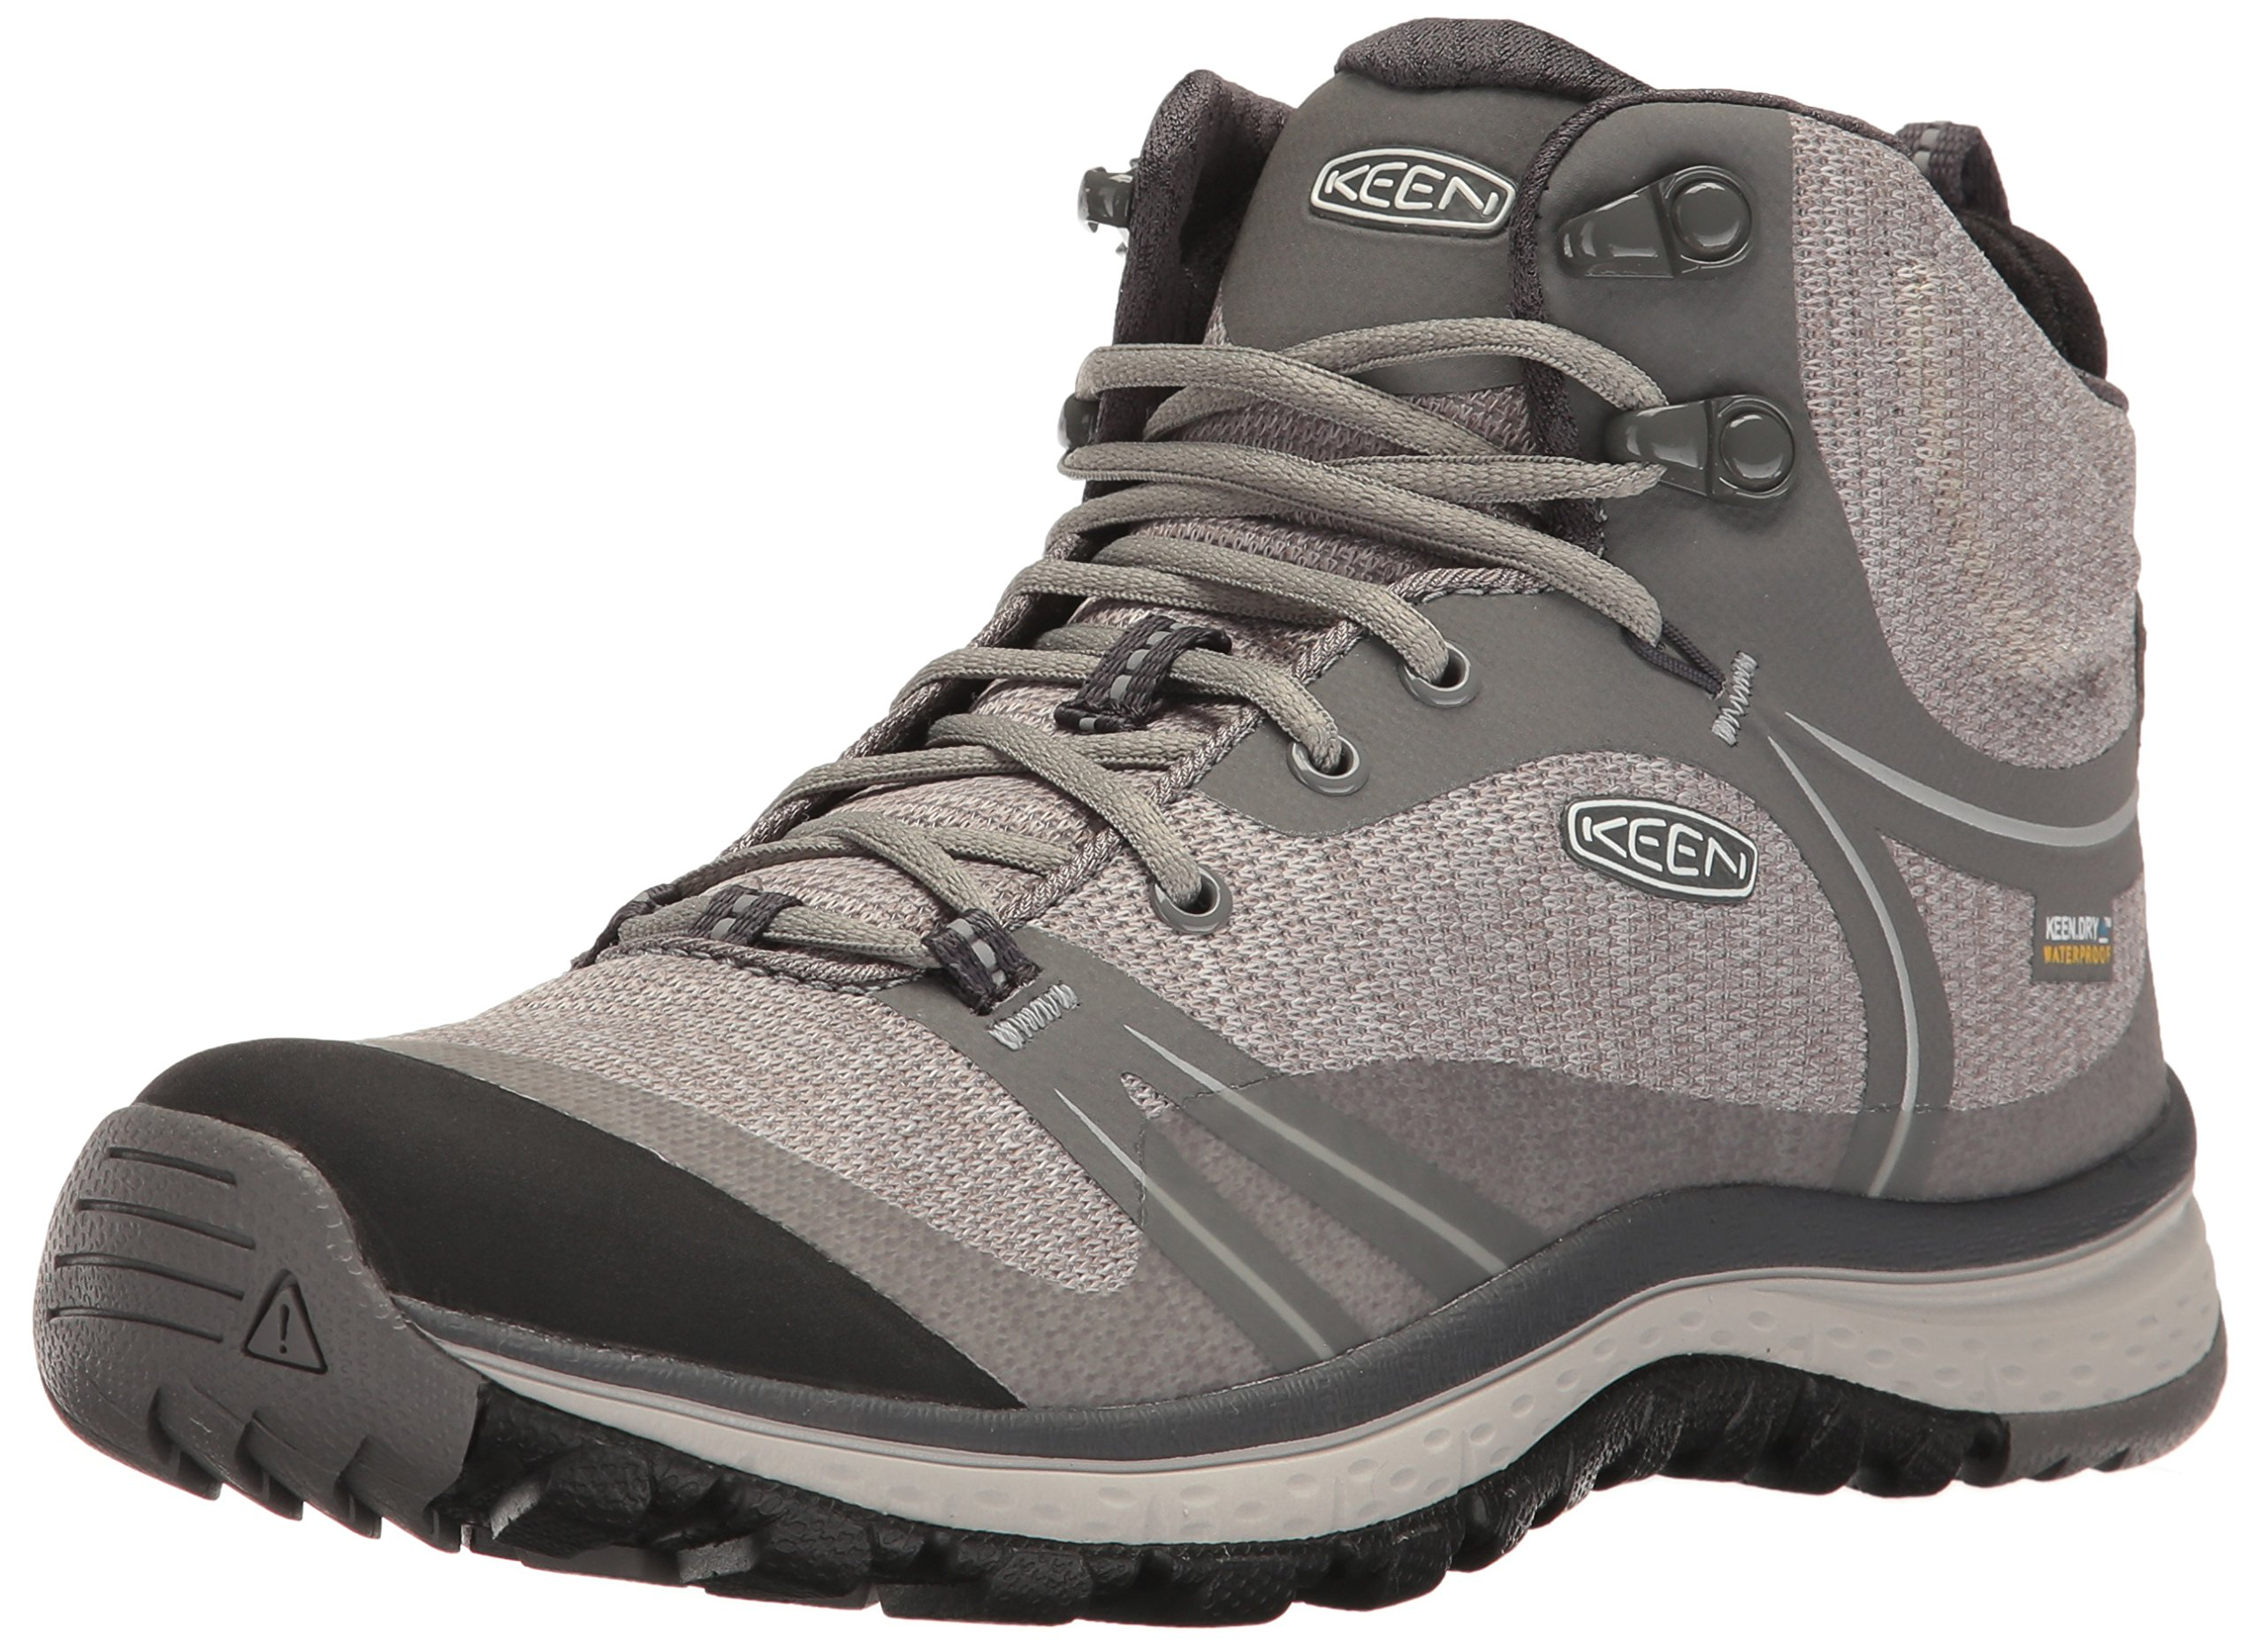 KEEN Women's Terradora Mid Waterproof Hiking Shoe, Gargoyle/Magnet, 9 M US